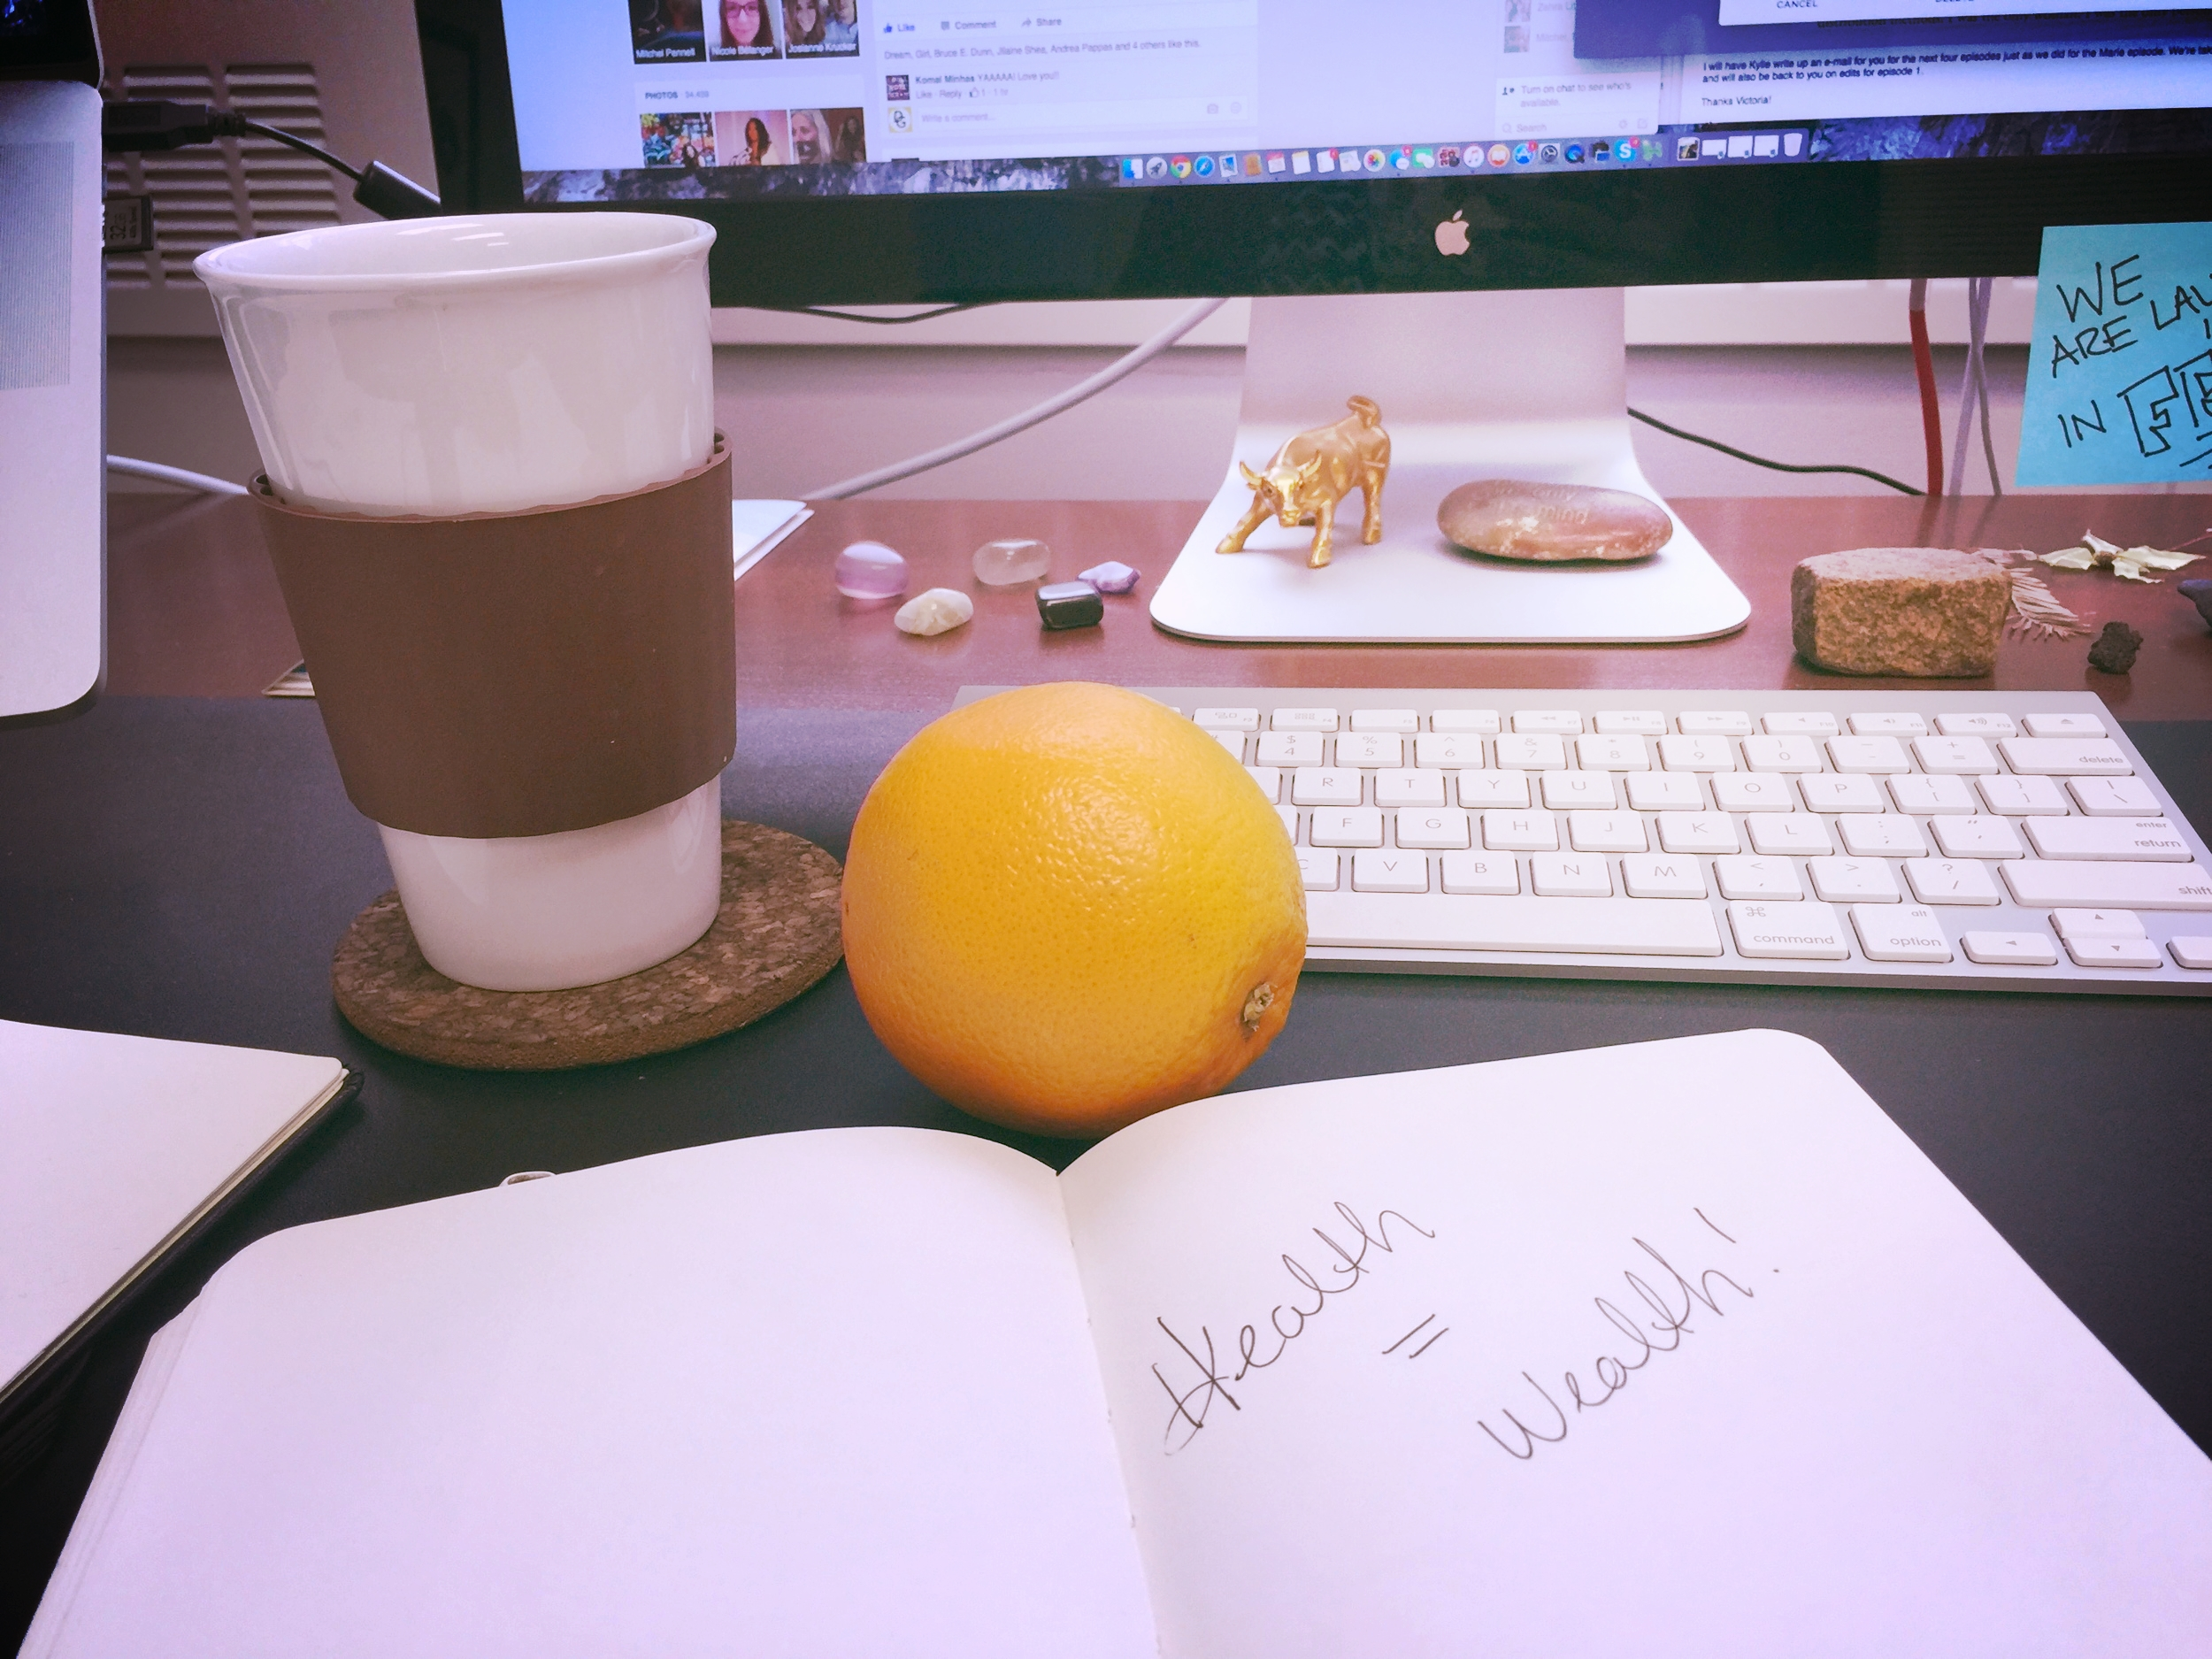 Staged shot - ha! Green tea, and my body journal is at home, so this is my work journal sitting in!